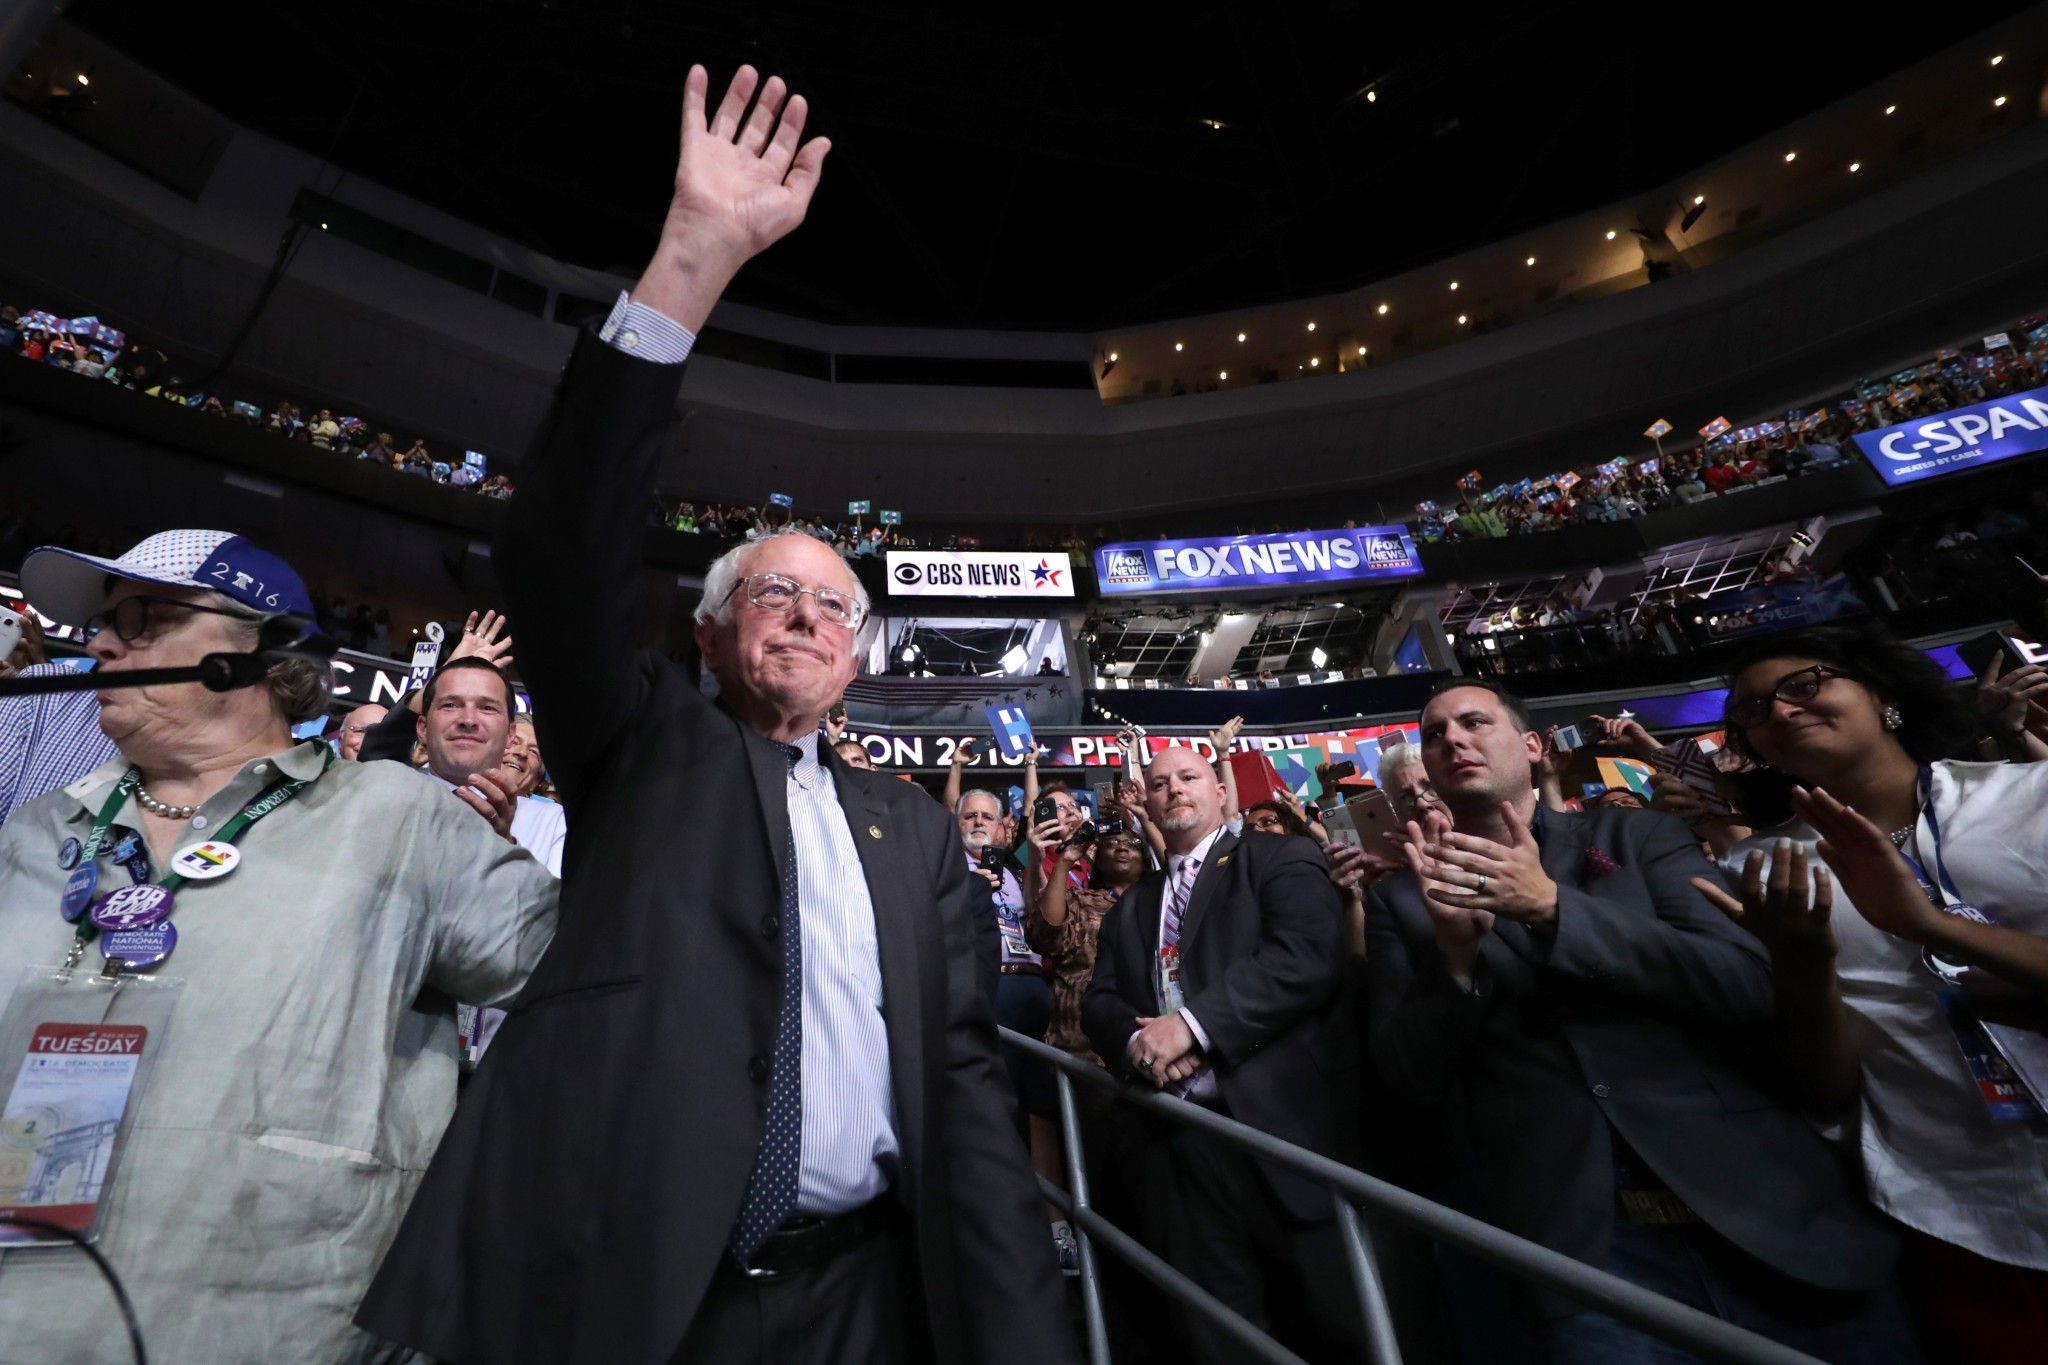 Bye-bye, Bernie. It's Hillary's convention now.